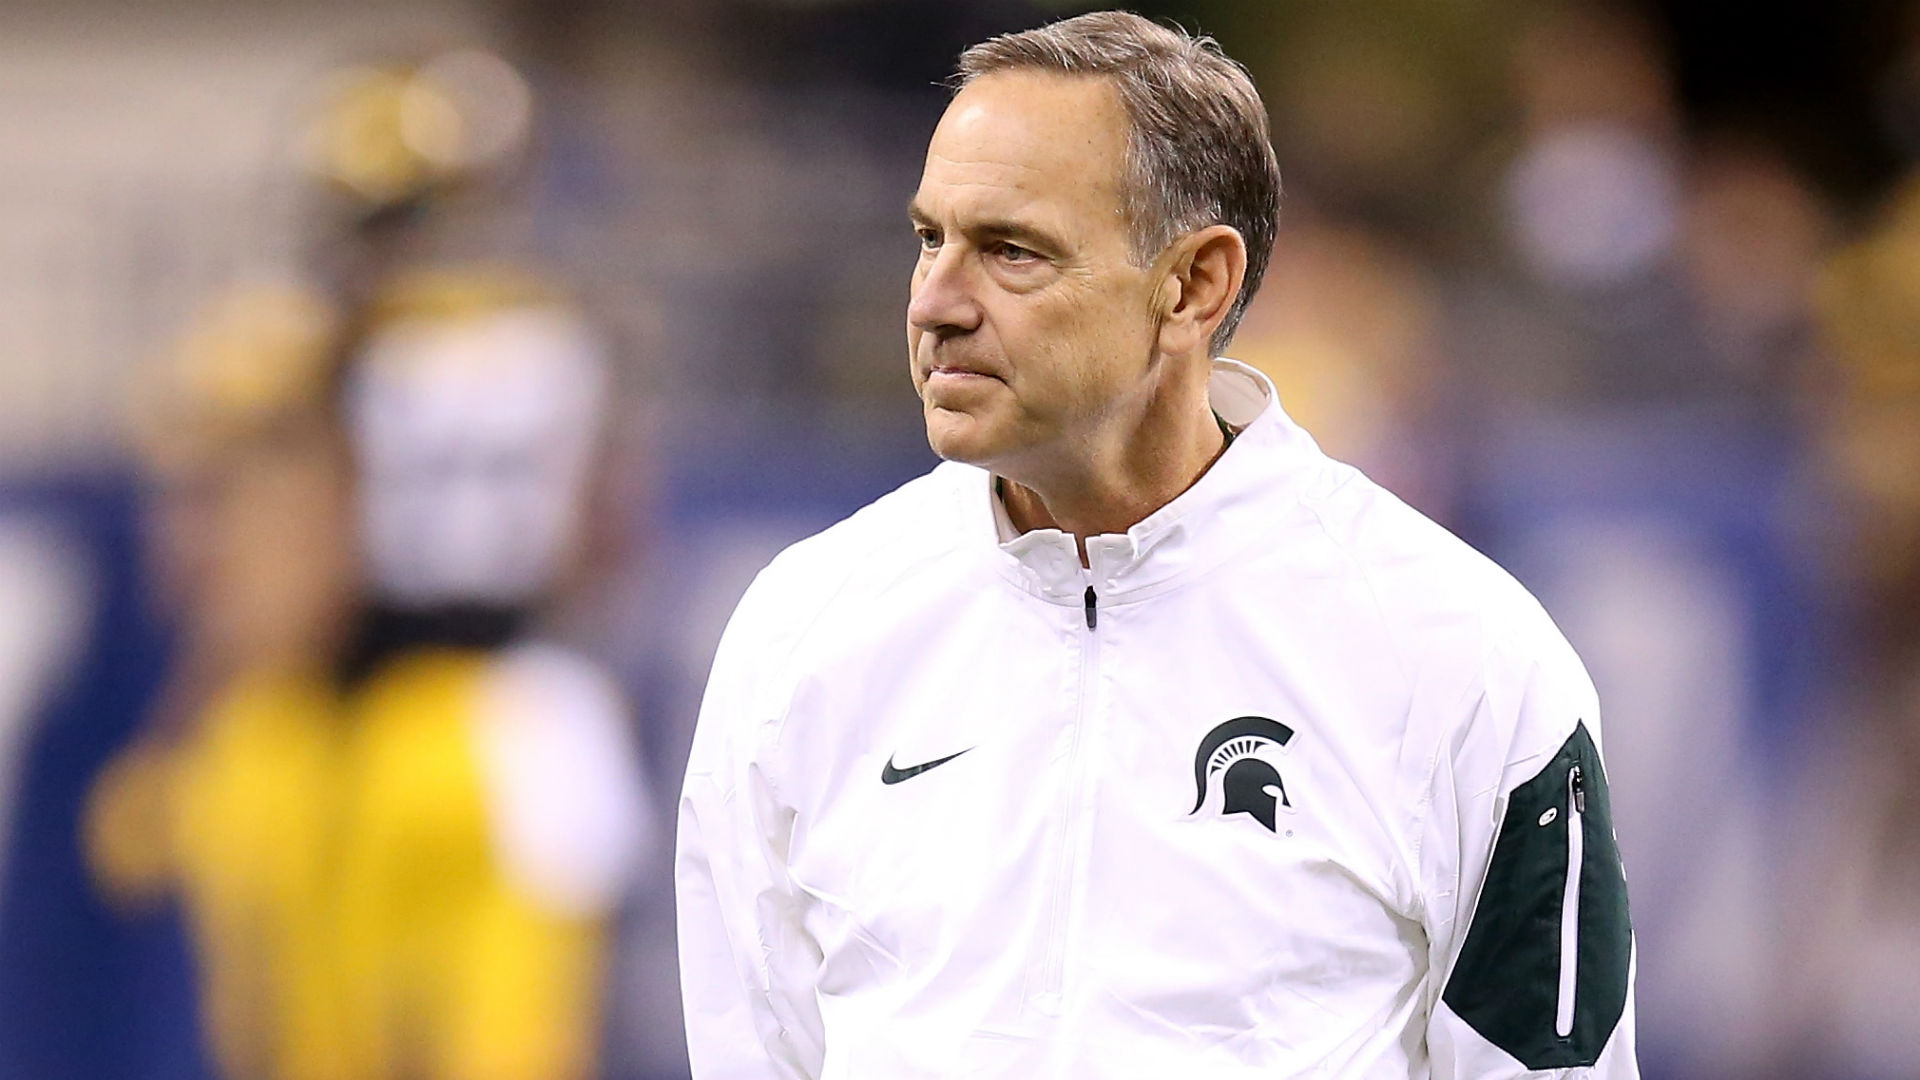 Warrants issued for Michigan State players charged with sexual assault